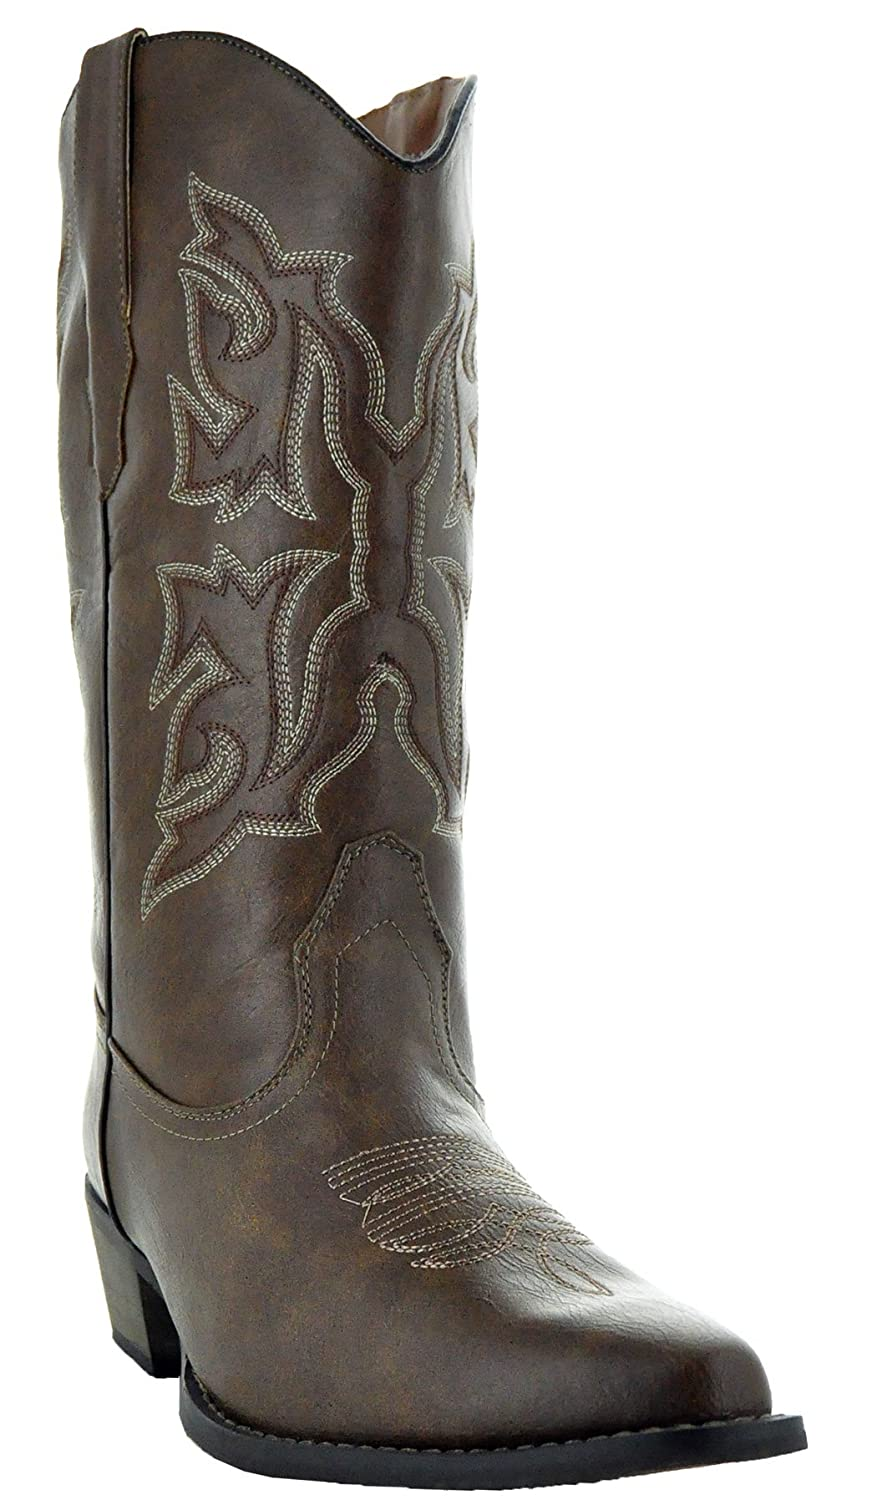 c28fe8d4f4e Country Love Pointed Toe Women's Cowboy Boots W101-1001